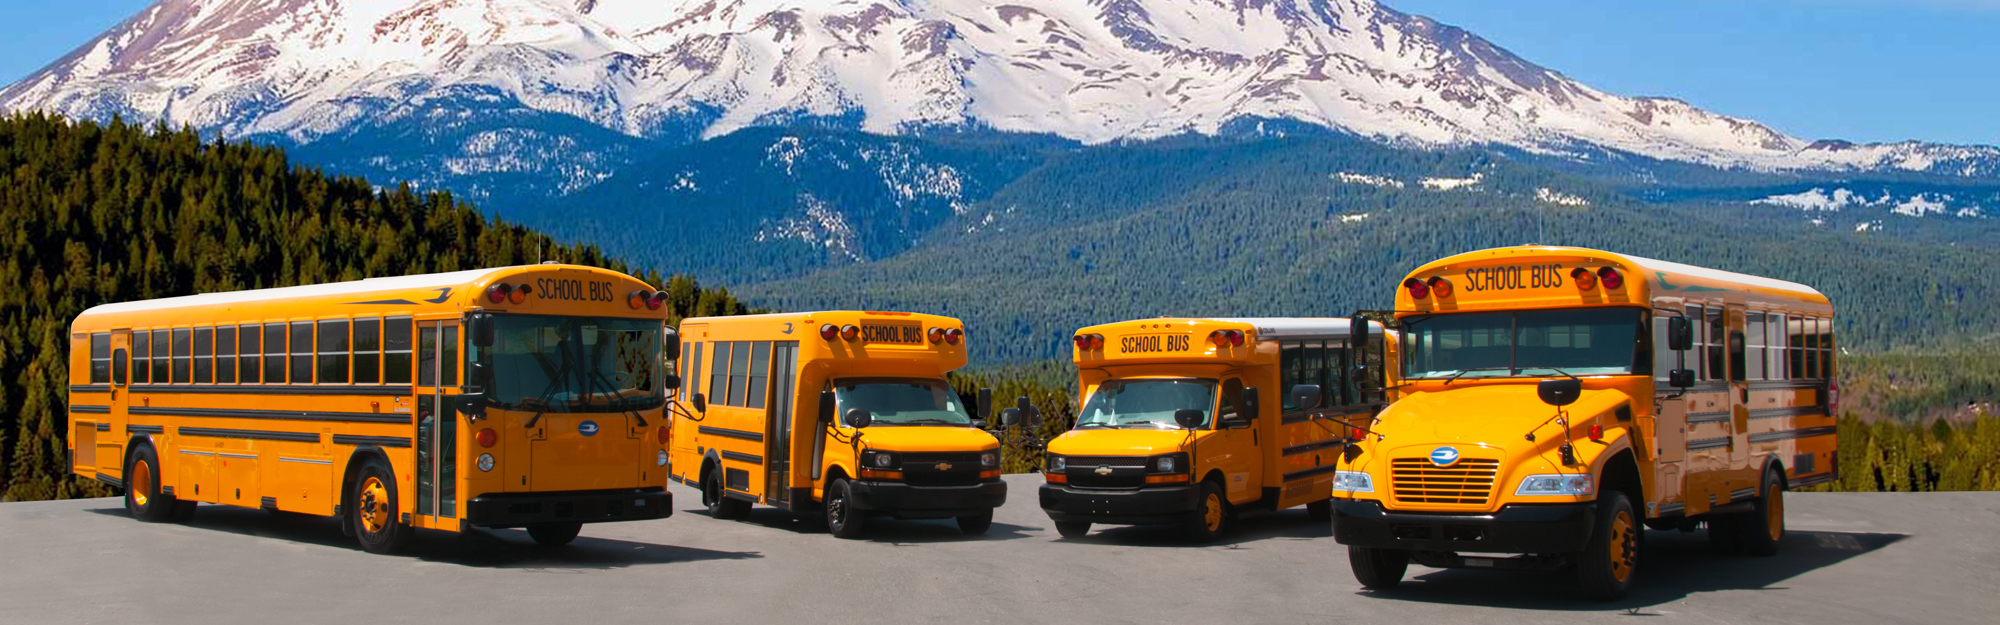 new-school-bus-header